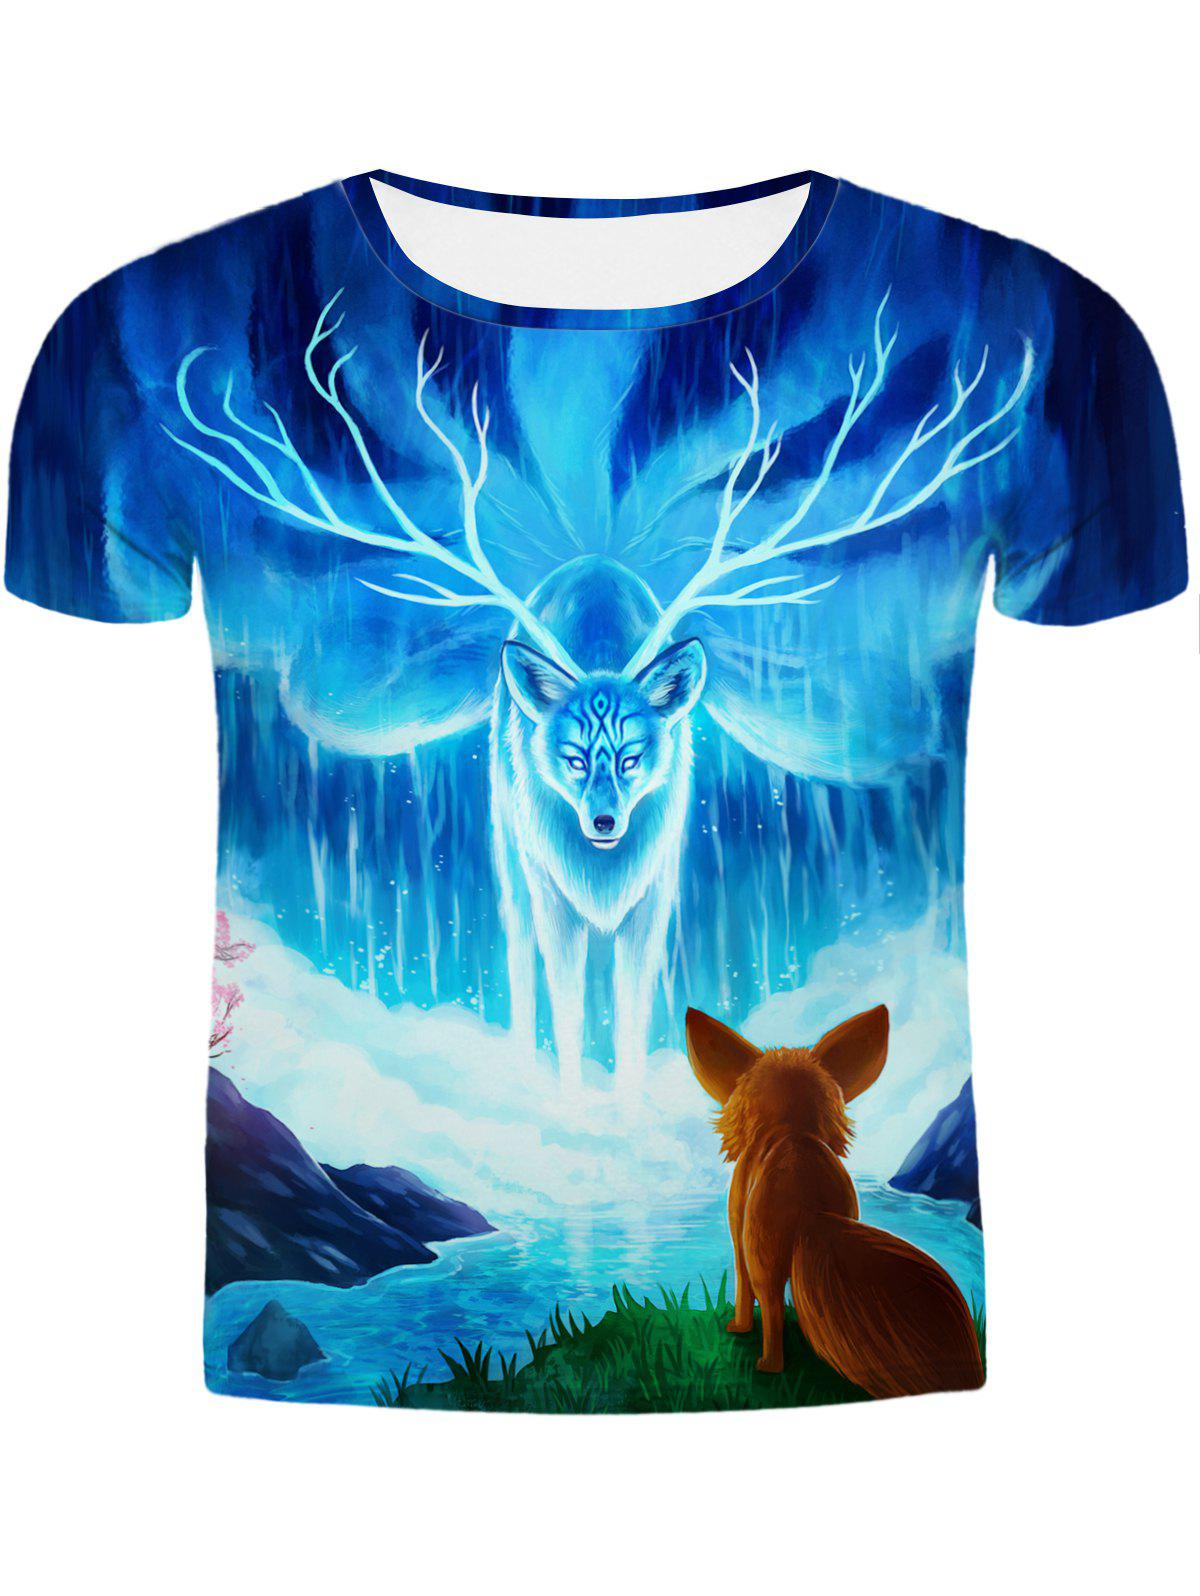 Hot Sale Round Neck 3D Animal Printing Slimming Men's Short Sleeves T-Shirt - COLORMIX 2XL